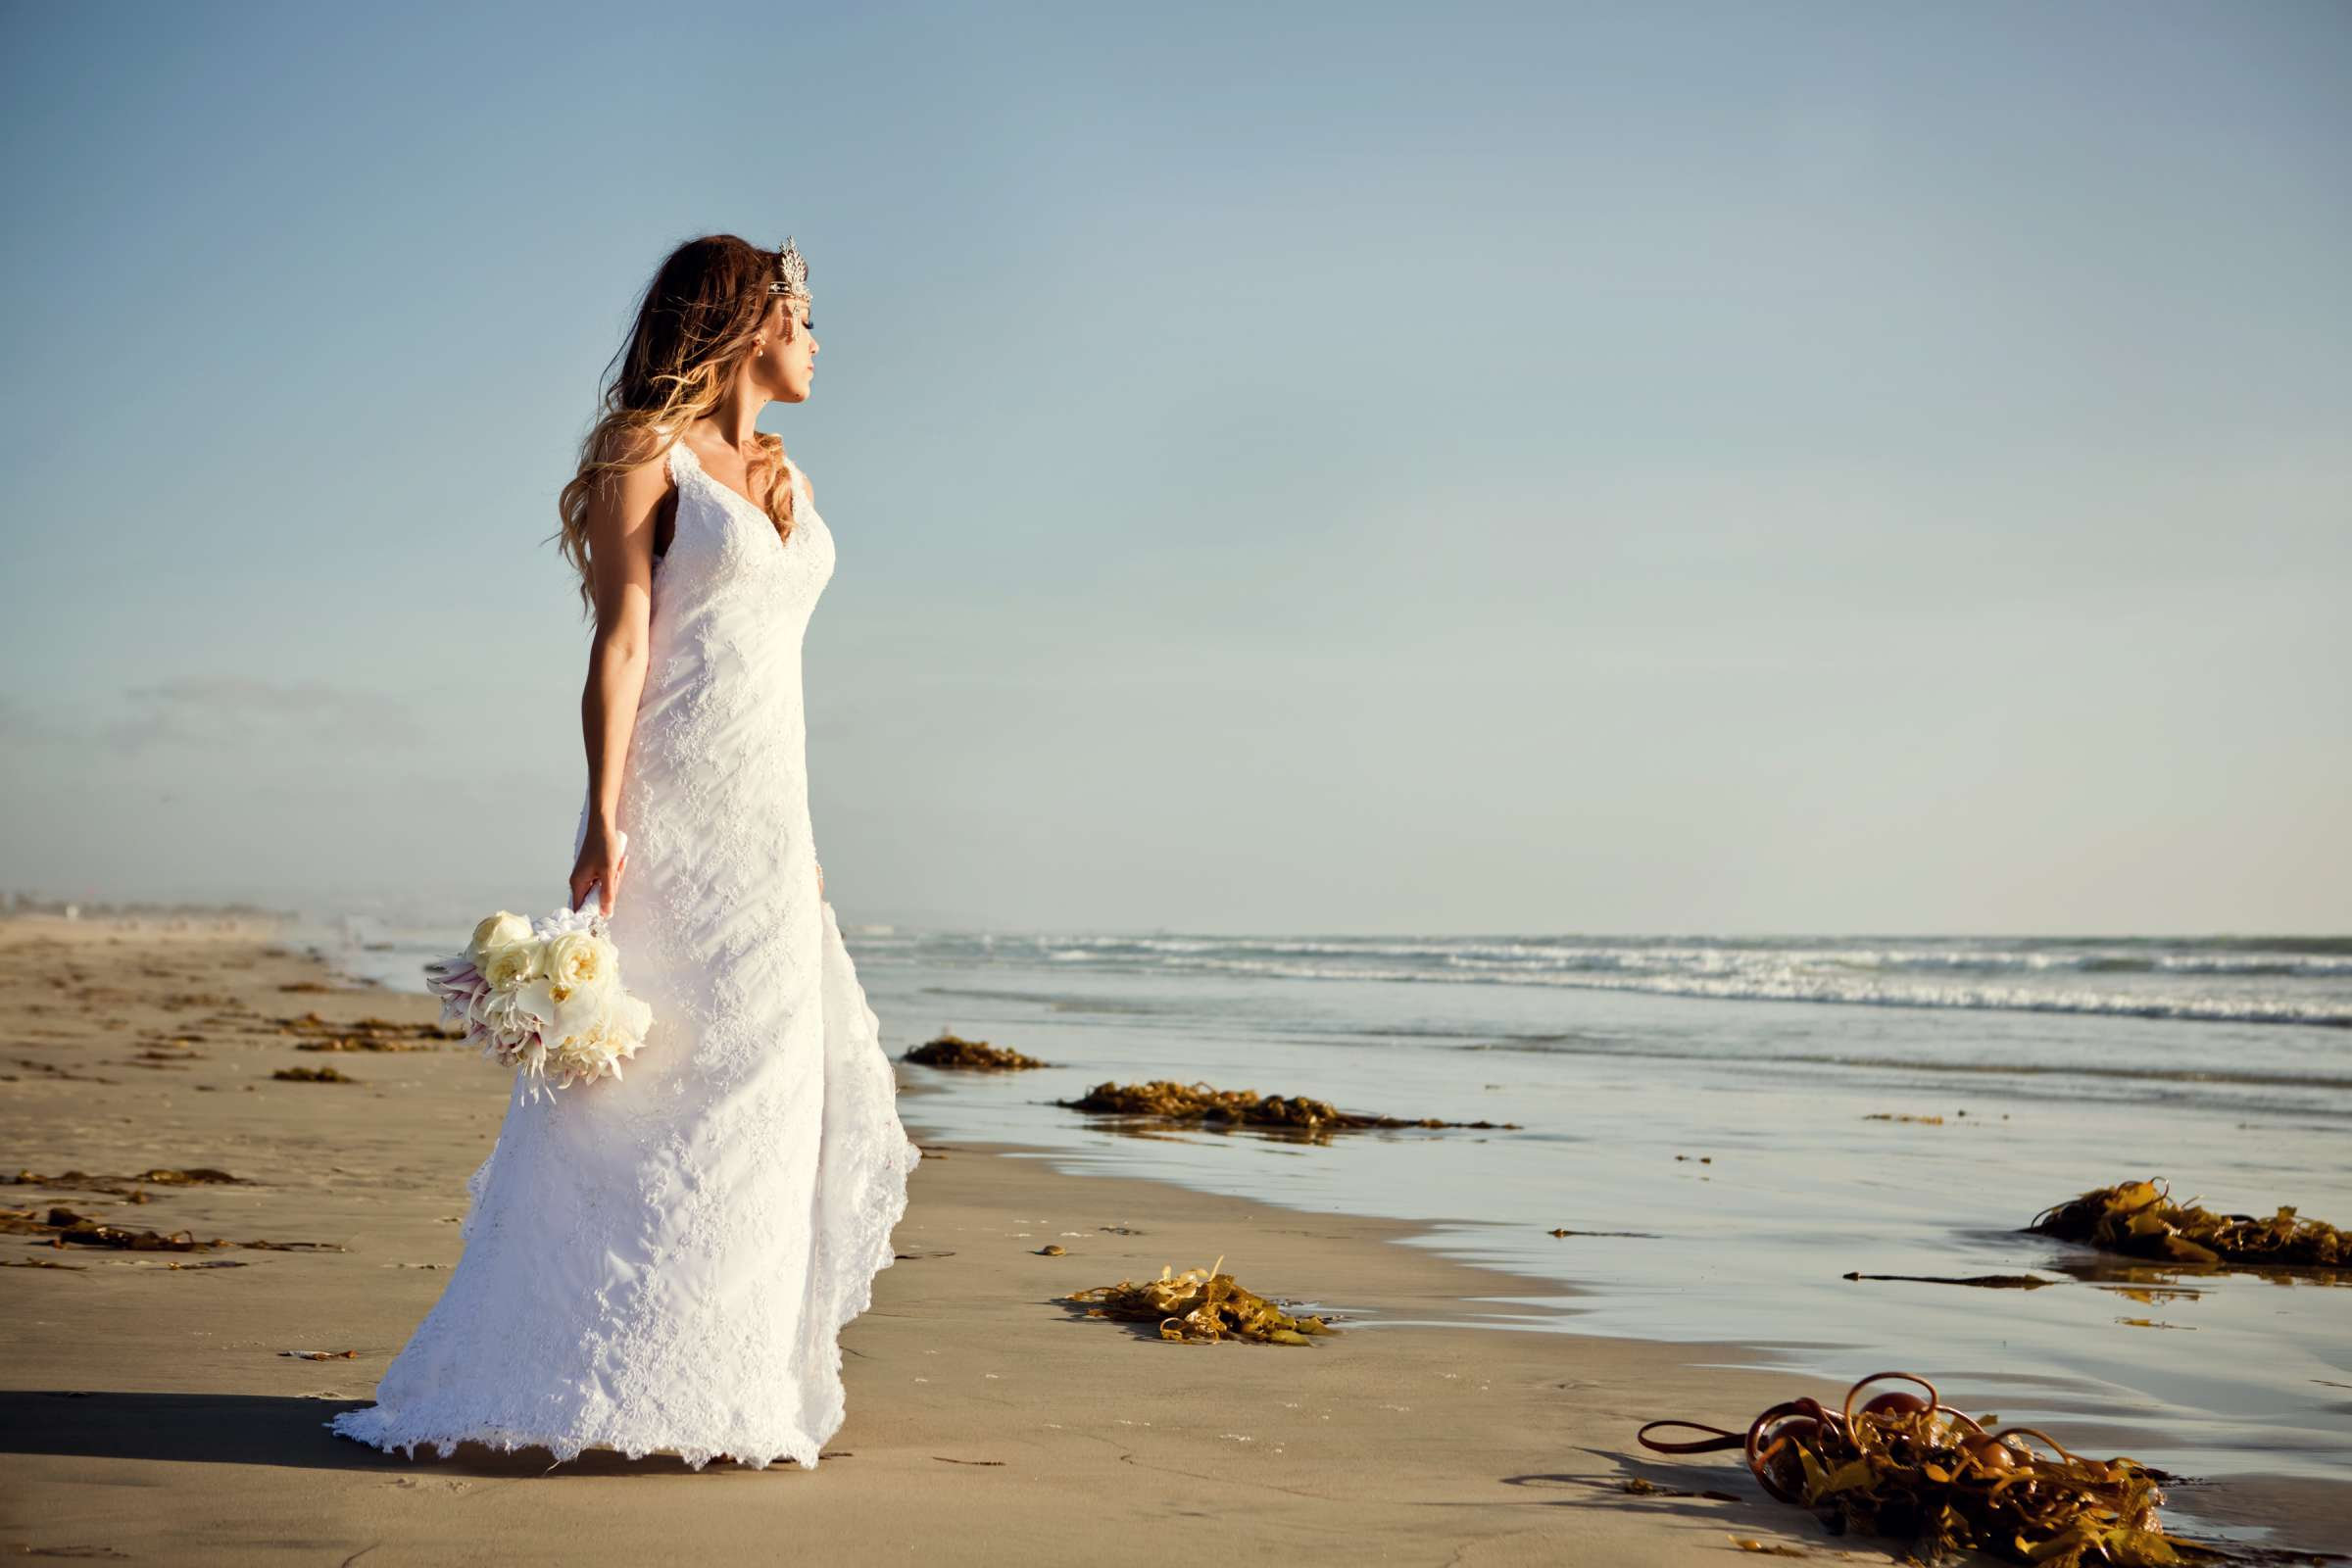 Loews Coronado Bay Resort Wedding coordinated by Kelly Lamb Events, Charlie and David Wedding Photo #3 by True Photography